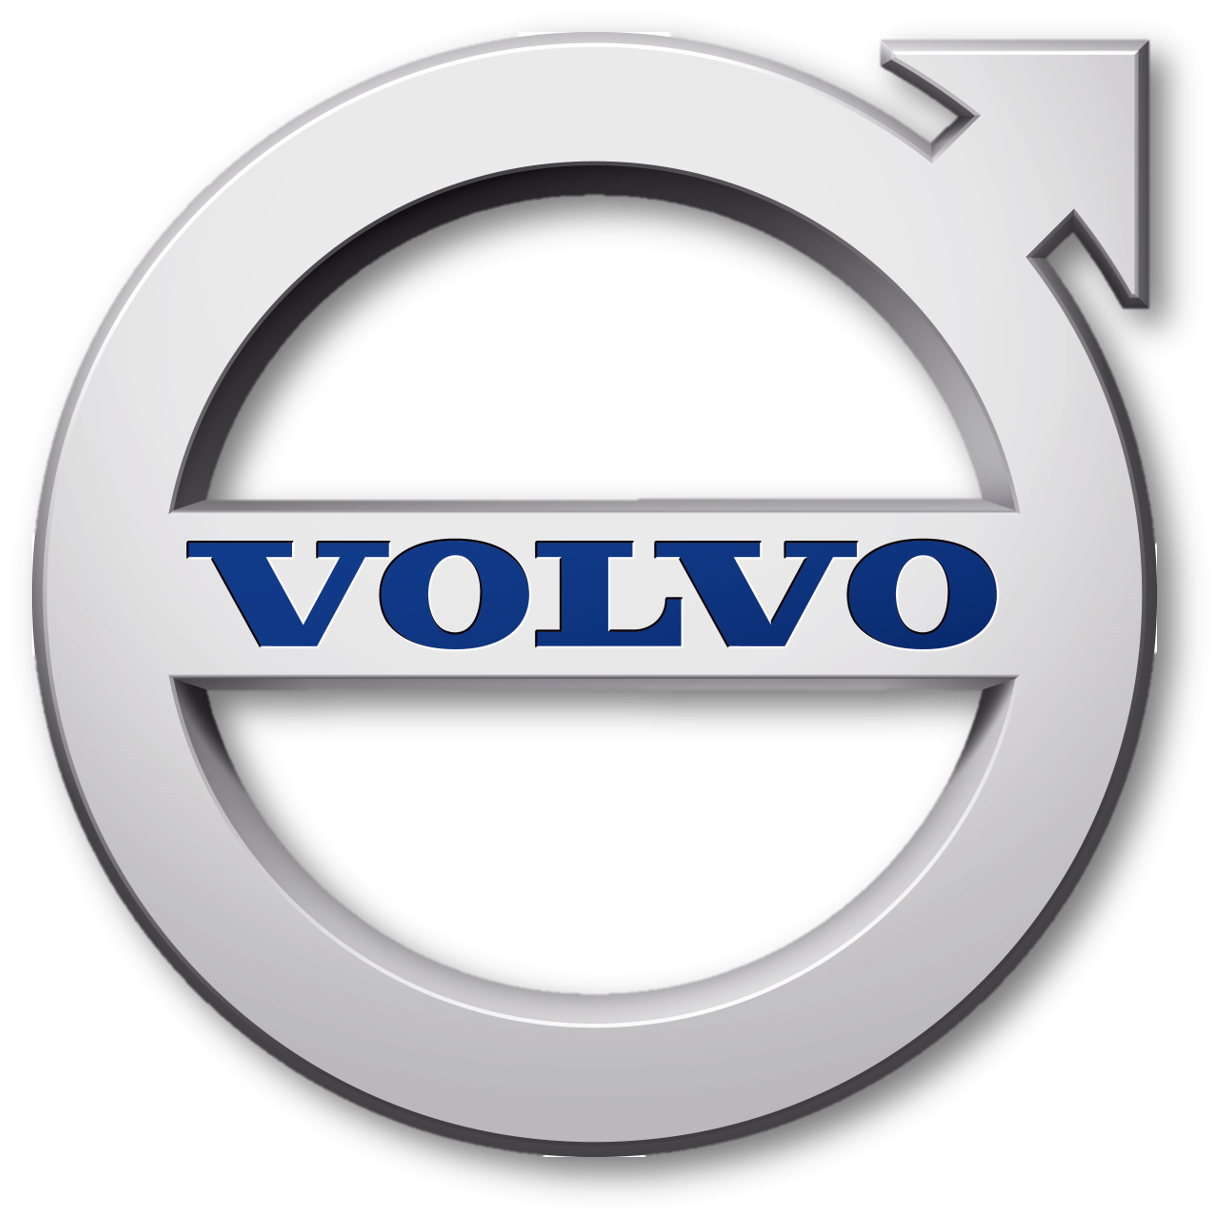 volvo it logos. Black Bedroom Furniture Sets. Home Design Ideas